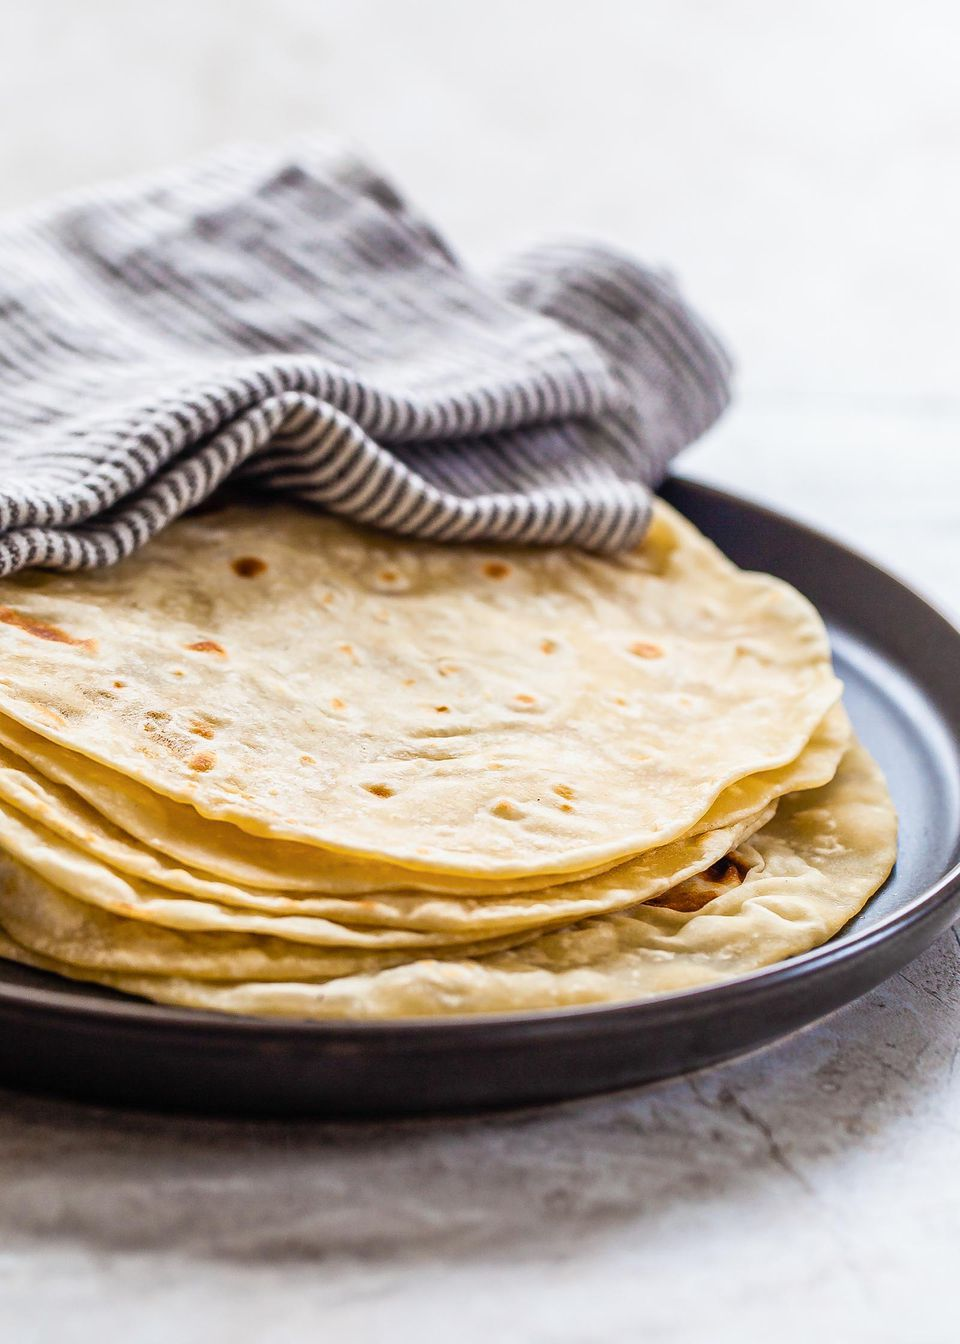 A close up of a stack of homemade flour tortillas on a platter covered by a striped towel.